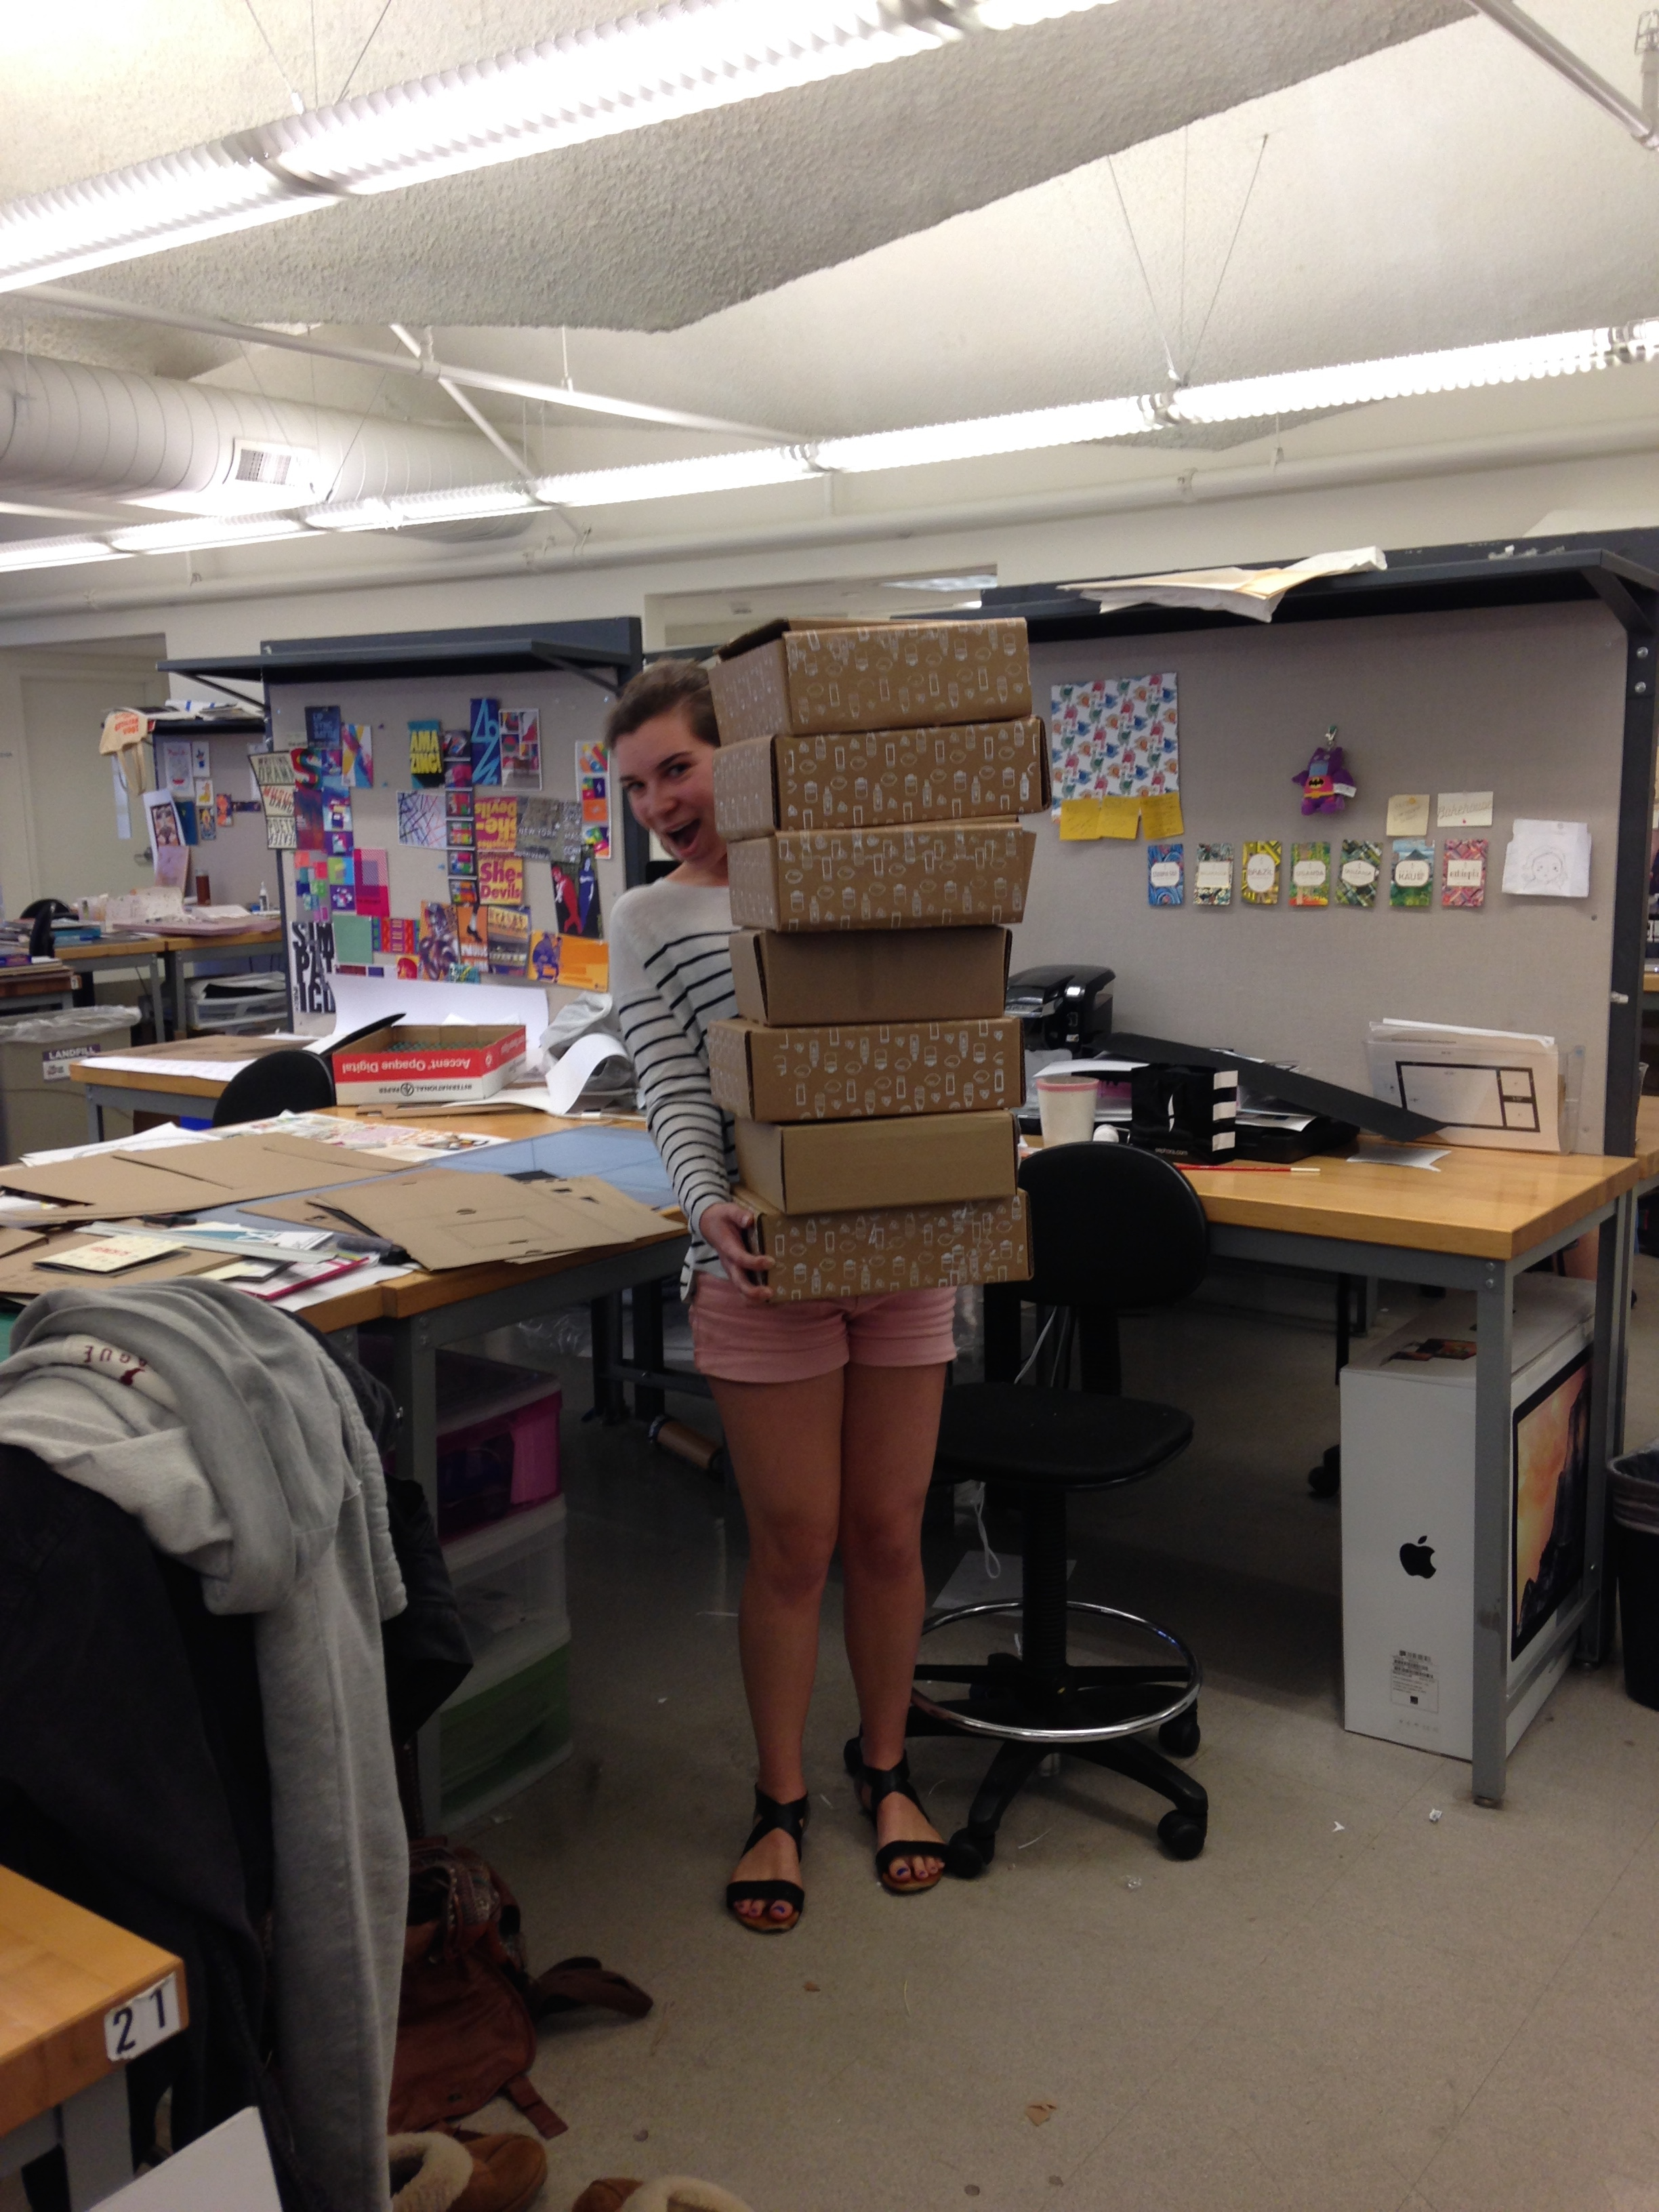 Me, with just a few of the iterations of boxes that I cut, put together, and screen printed myself.